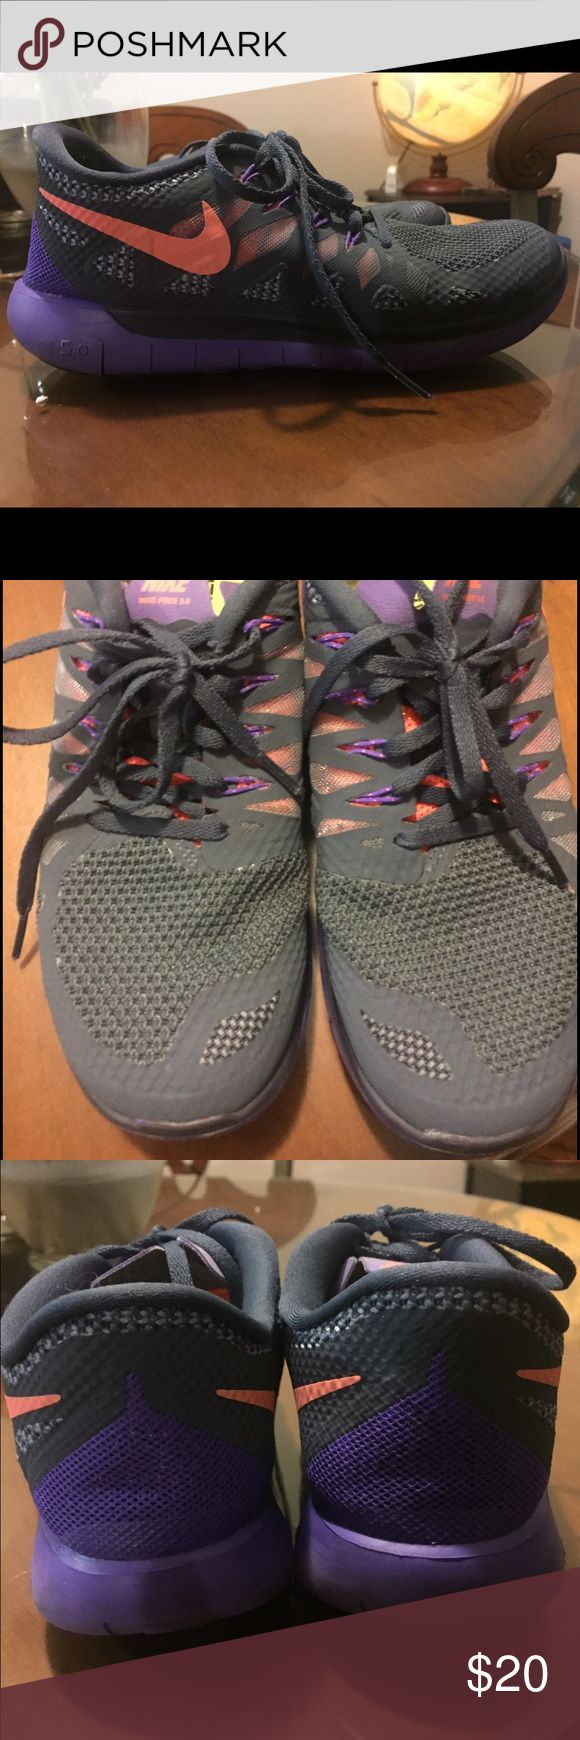 Nike free 5.0 Gray with orange/coral and purple detail. Worn, but good condition. I love these shoes, but my feet are just too wide for them. Great for cross training  type exercises. Nike Shoes Sneakers